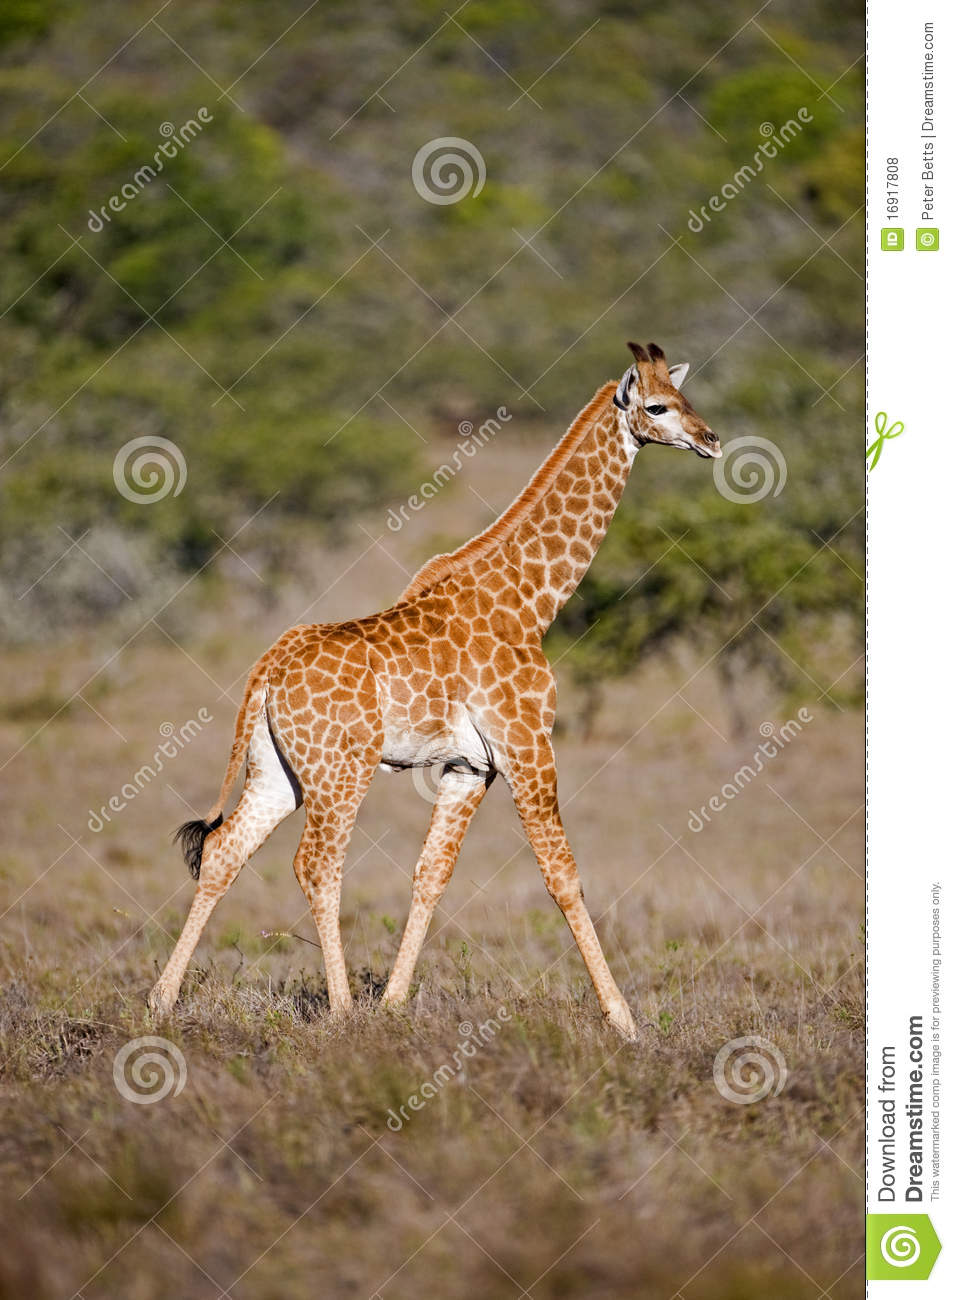 Before Mating the Female Giraffe Will First Urinate in